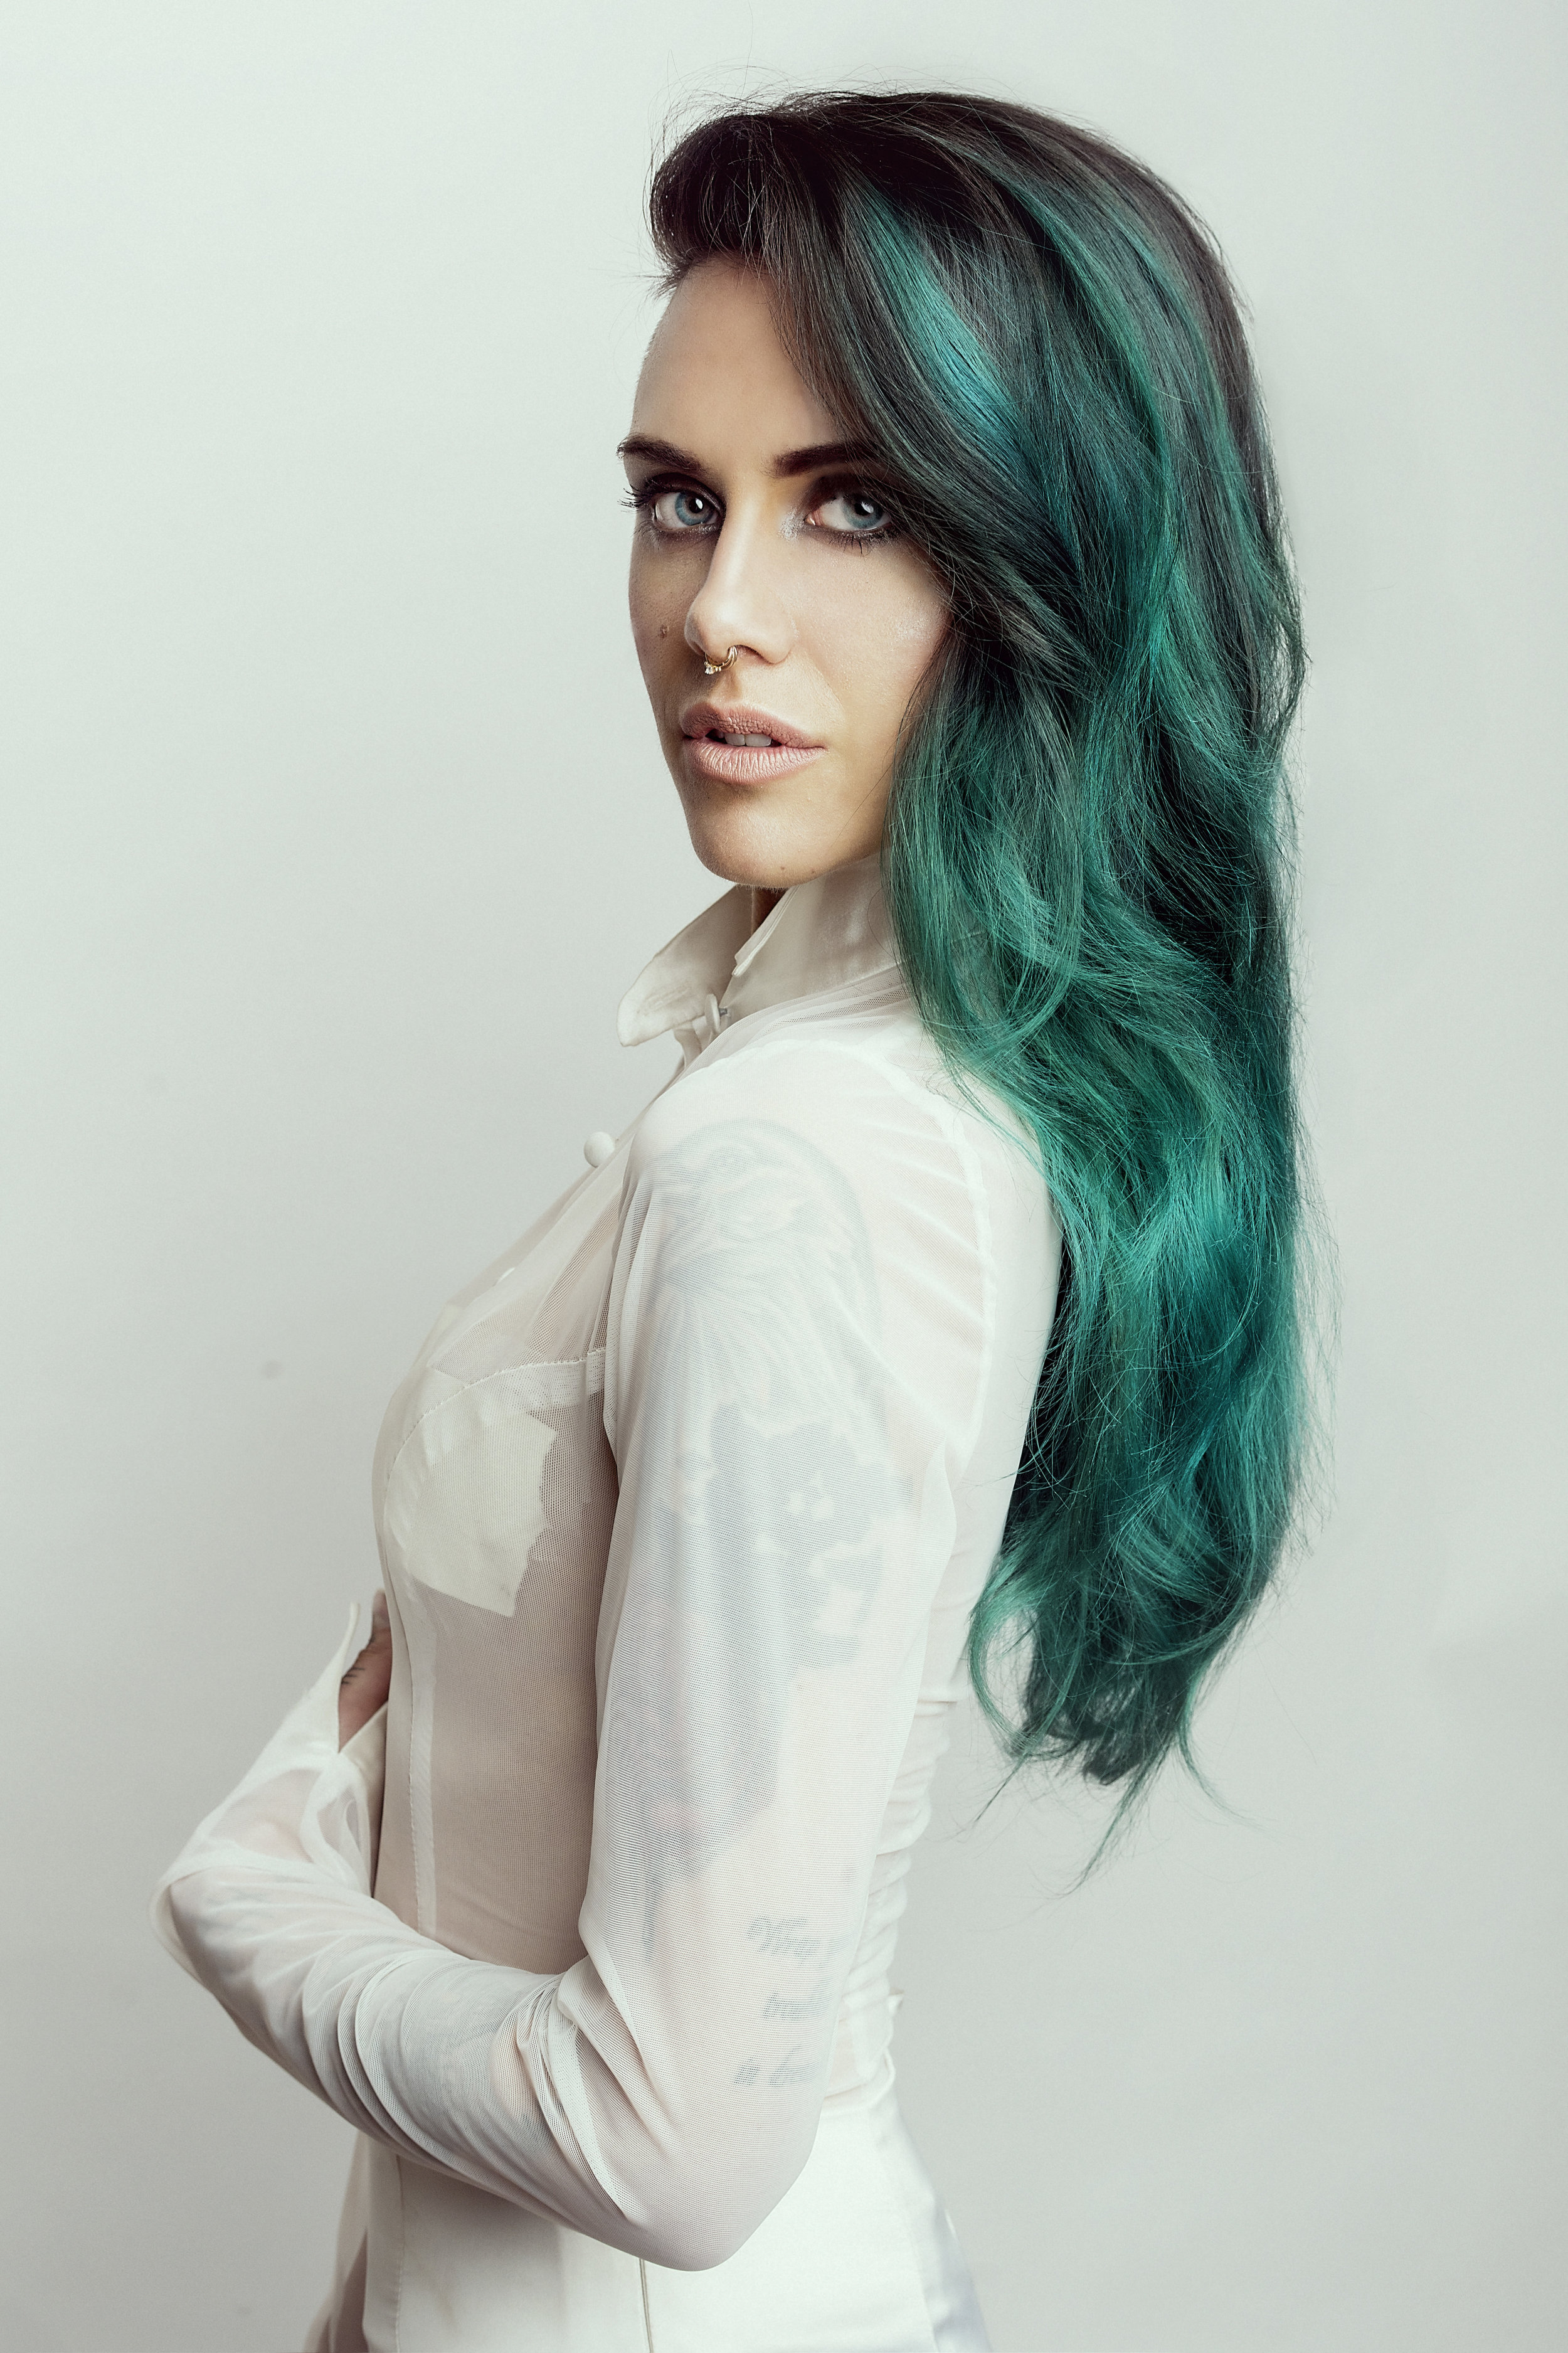 mermaid hair girl.jpg